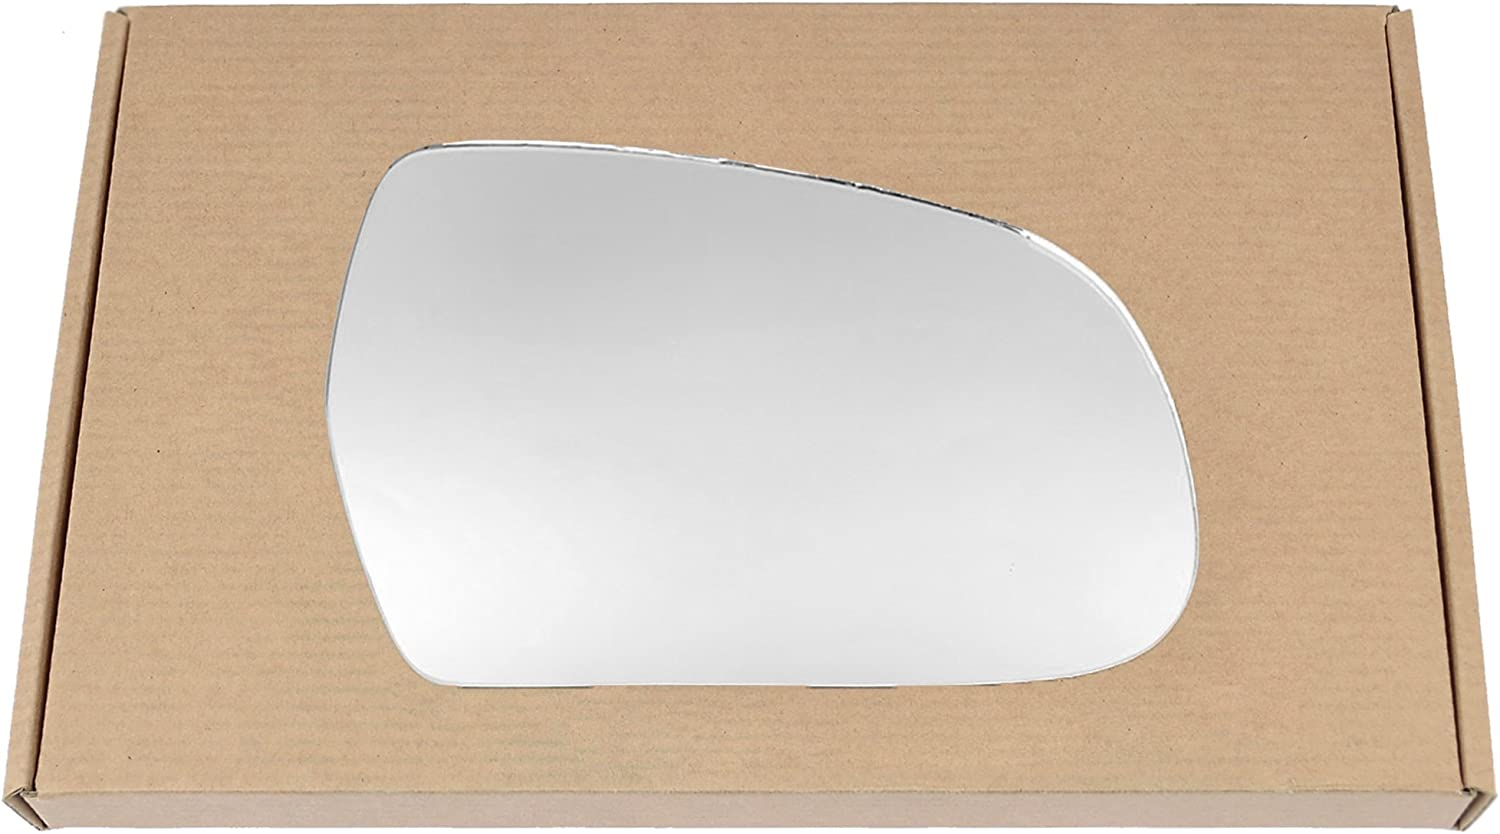 Right Off Driver Side Stick On Mirror glass #AuA310-13-RC